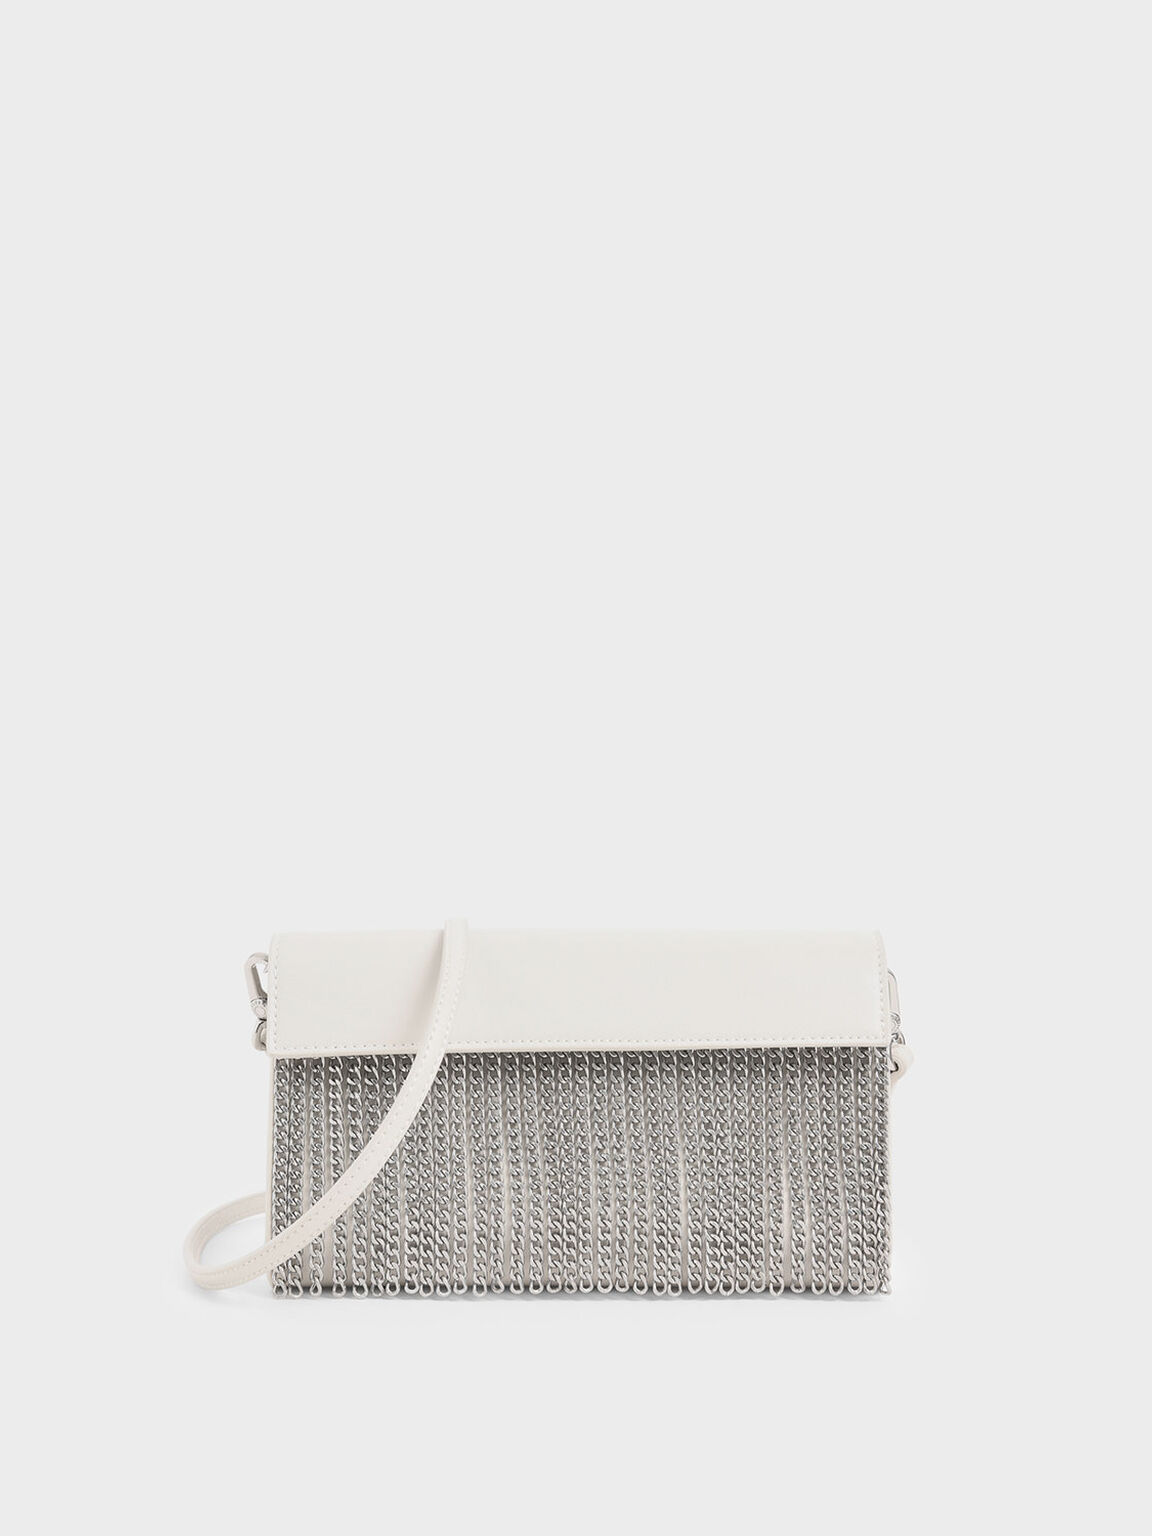 Chain Fringe Clutch, Cream, hi-res